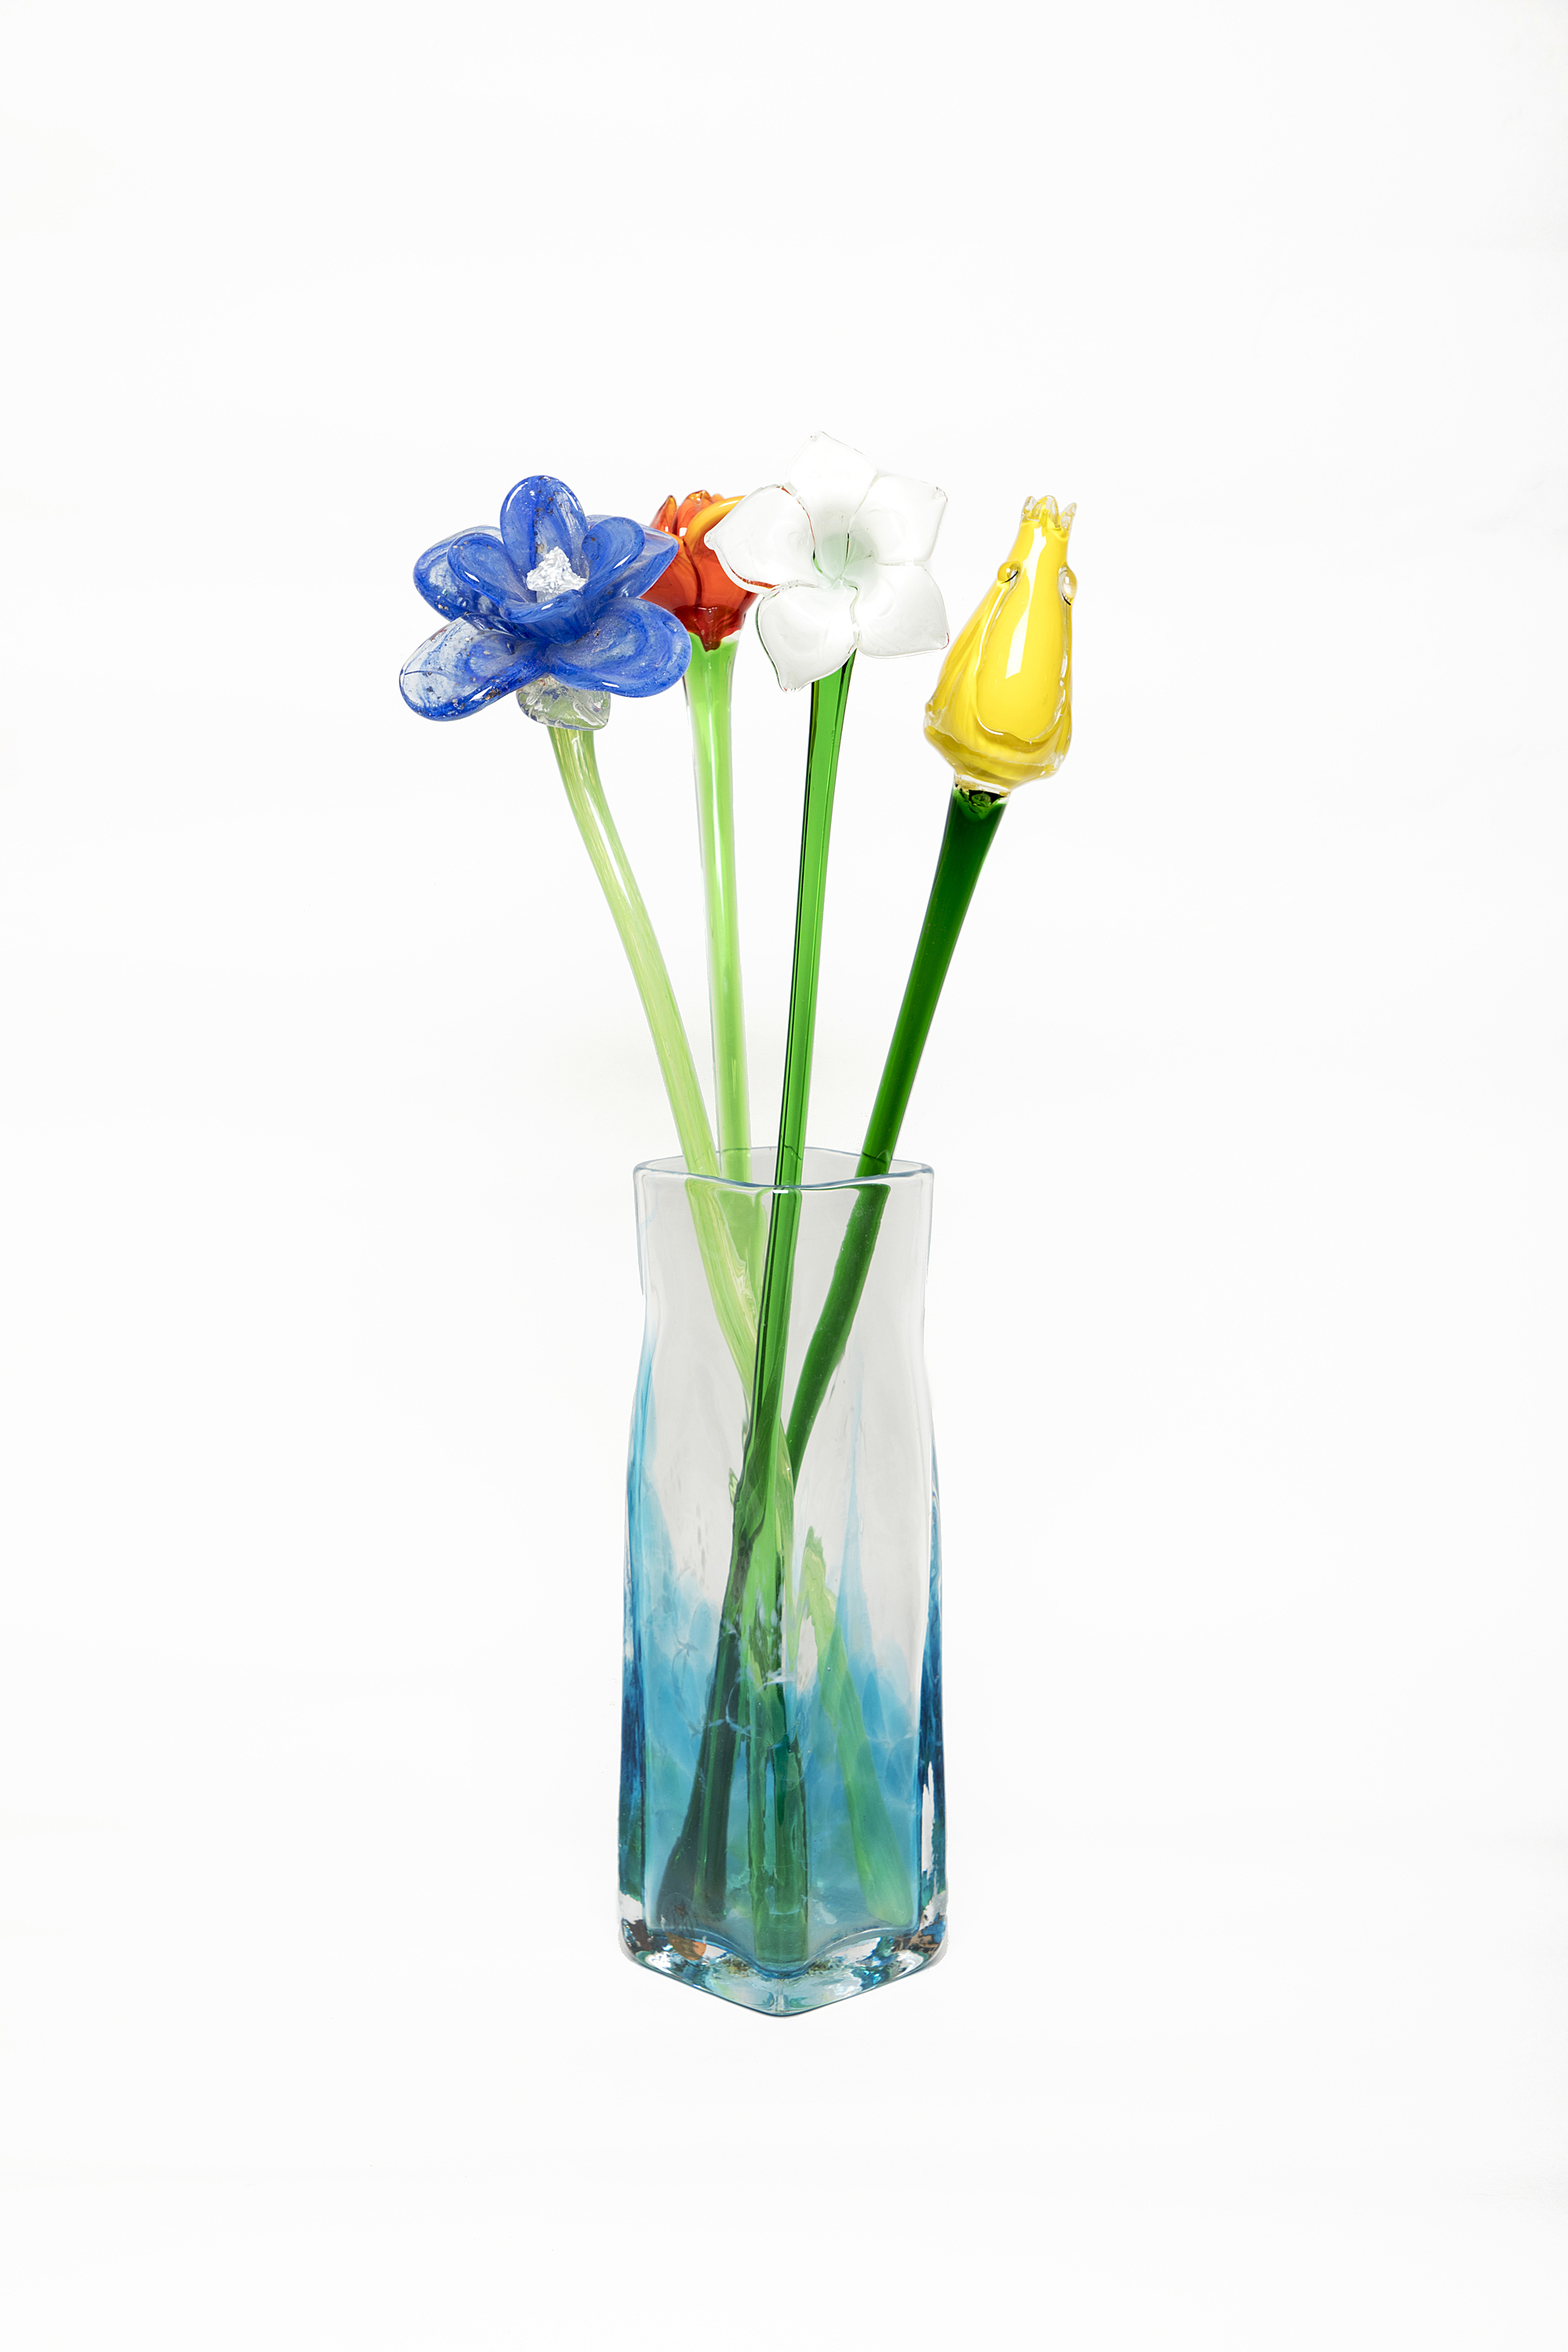 Very Quirky Glass Flowers of Various Colours